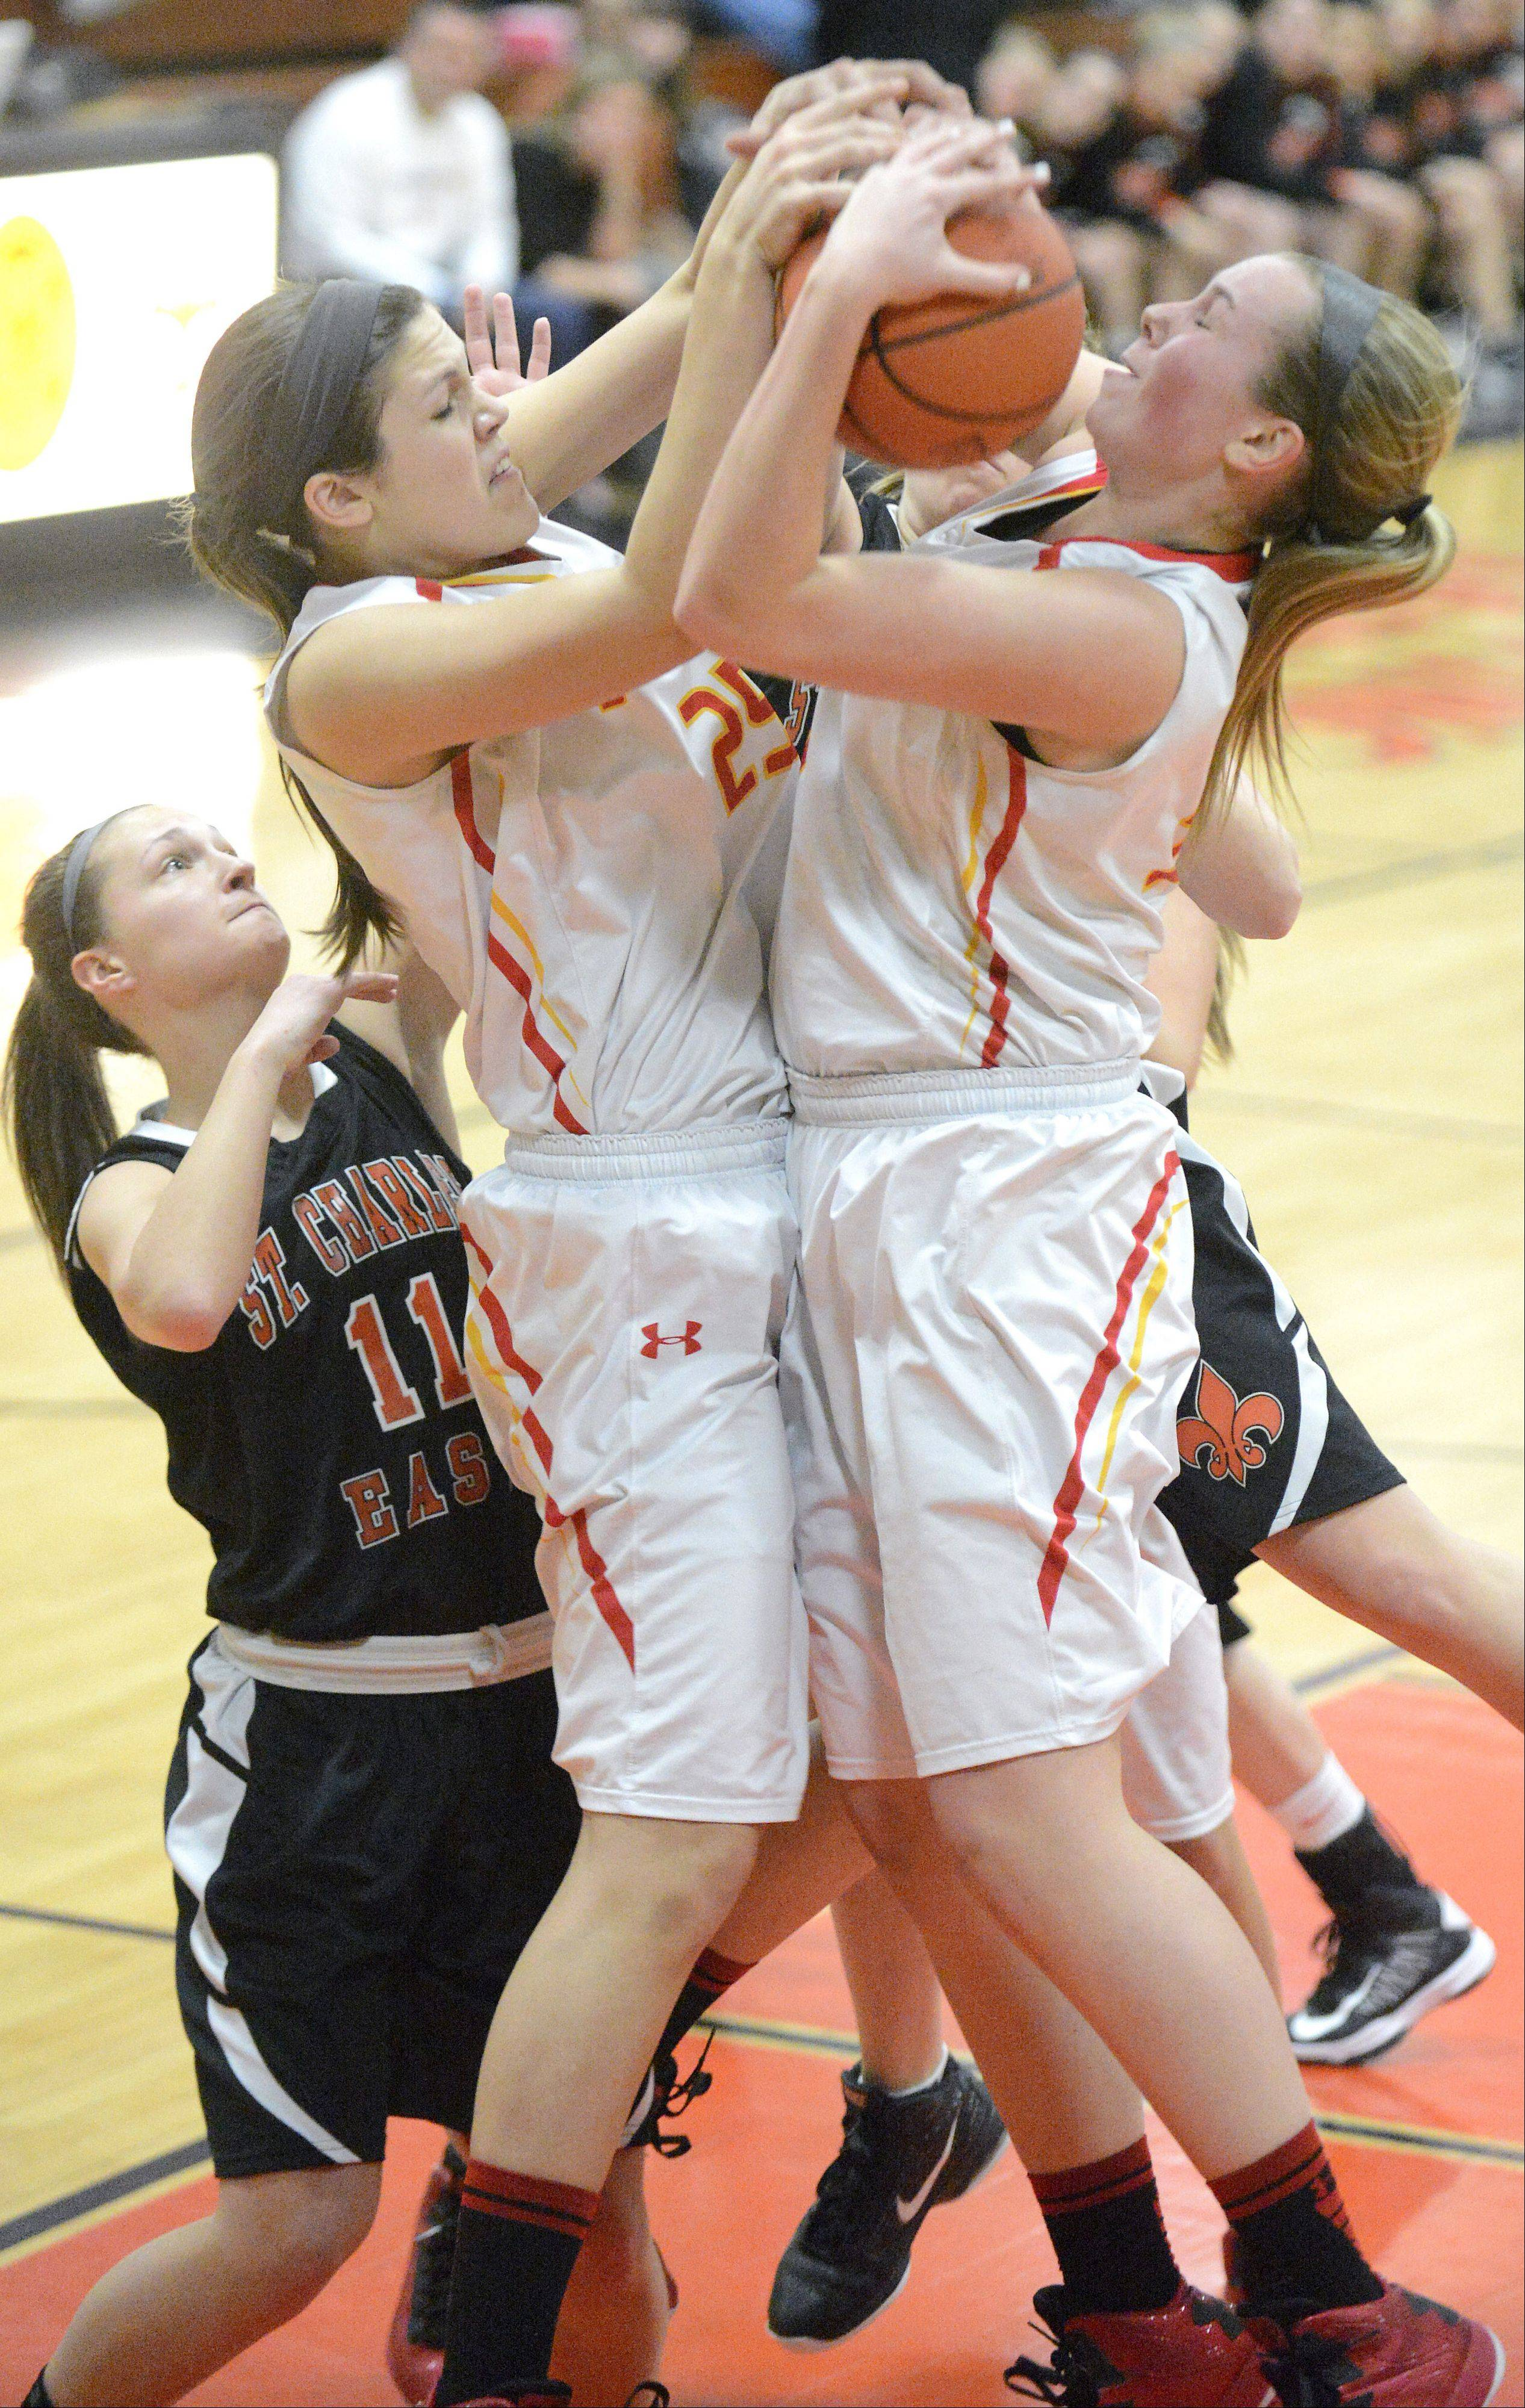 Laura Stoecker/lstoecker@dailyherald.comBatavia's Hannah Frazier and Erin Bayram both grab for a rebound in the third quarter of the 4A regional vs. St. Charles East on Tuesday, February 12.